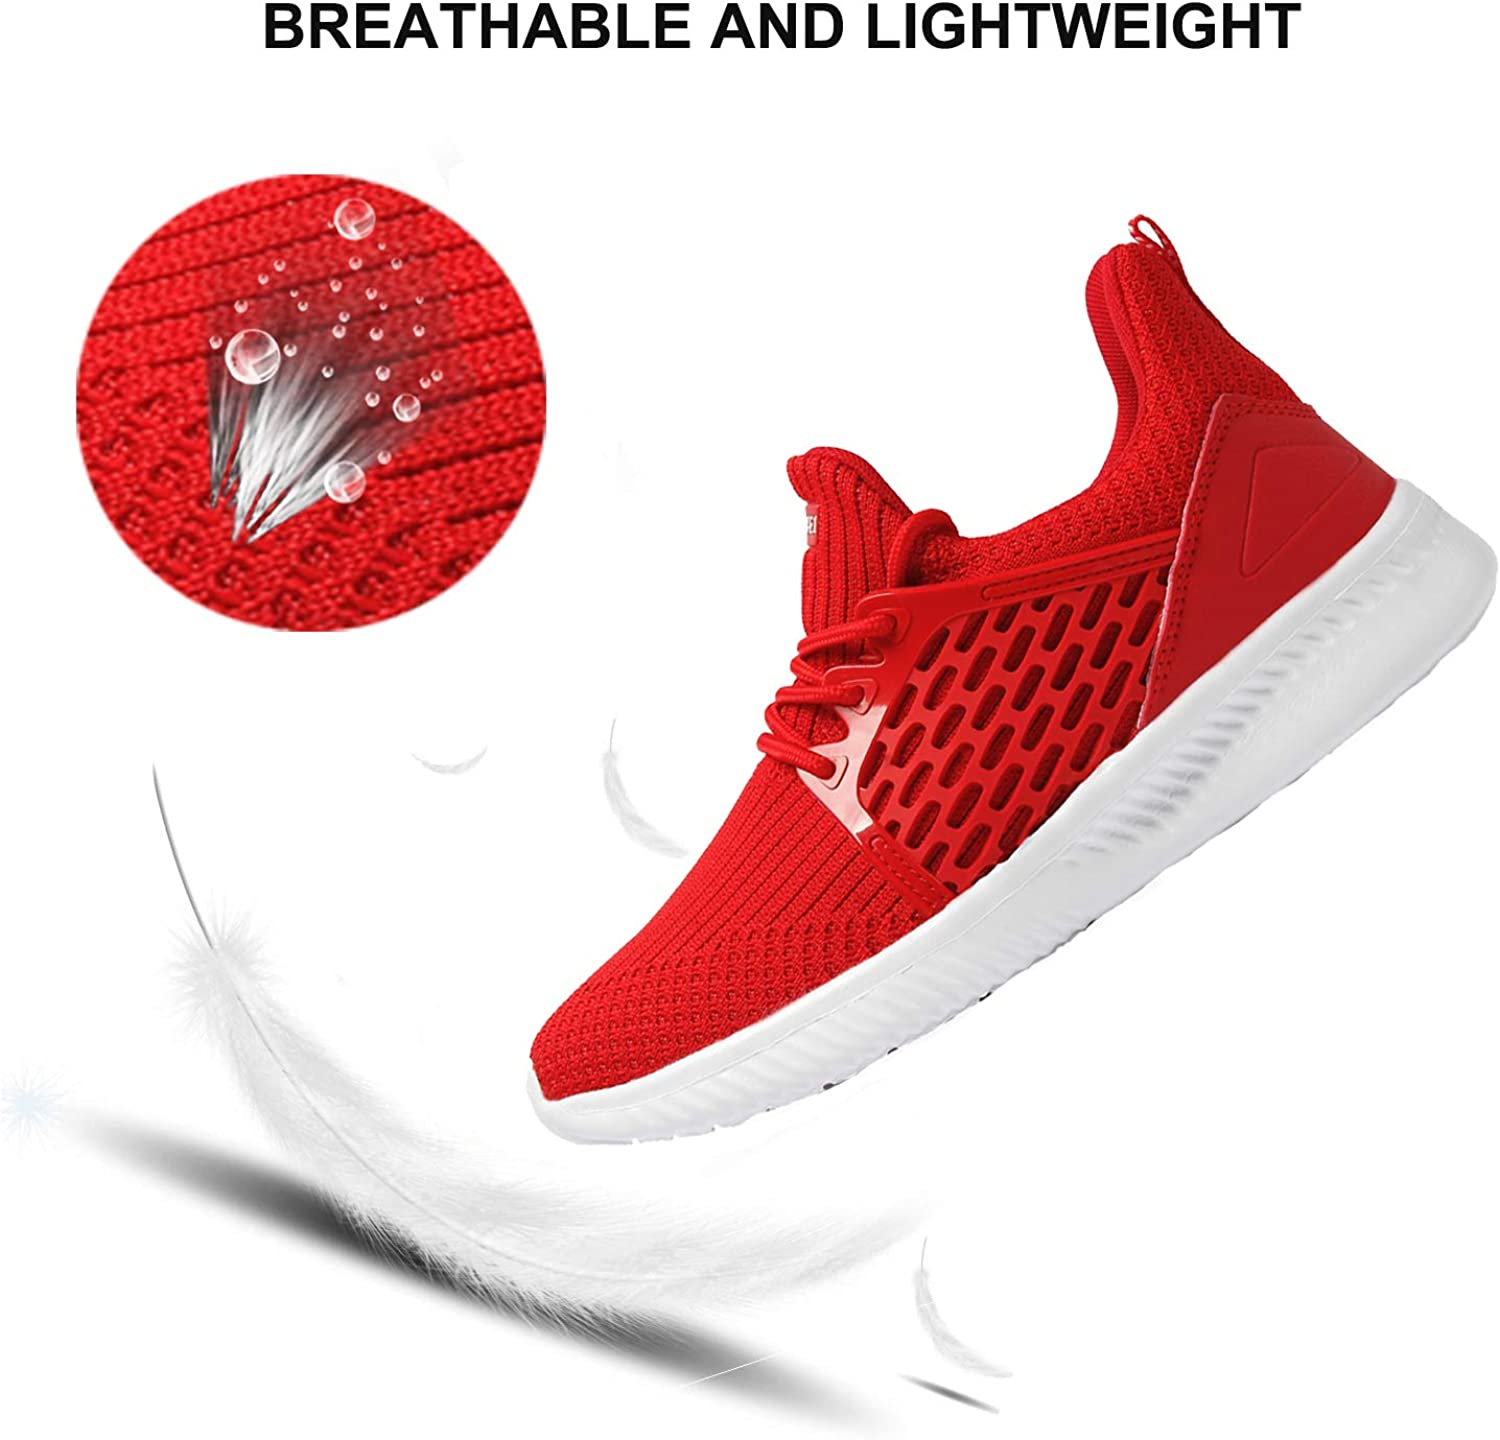 AMAWEI Boys Girls Sneakers Lightweight Breathable Casual Athletic Shoes for School Gym Tennis Running Walking Hiking